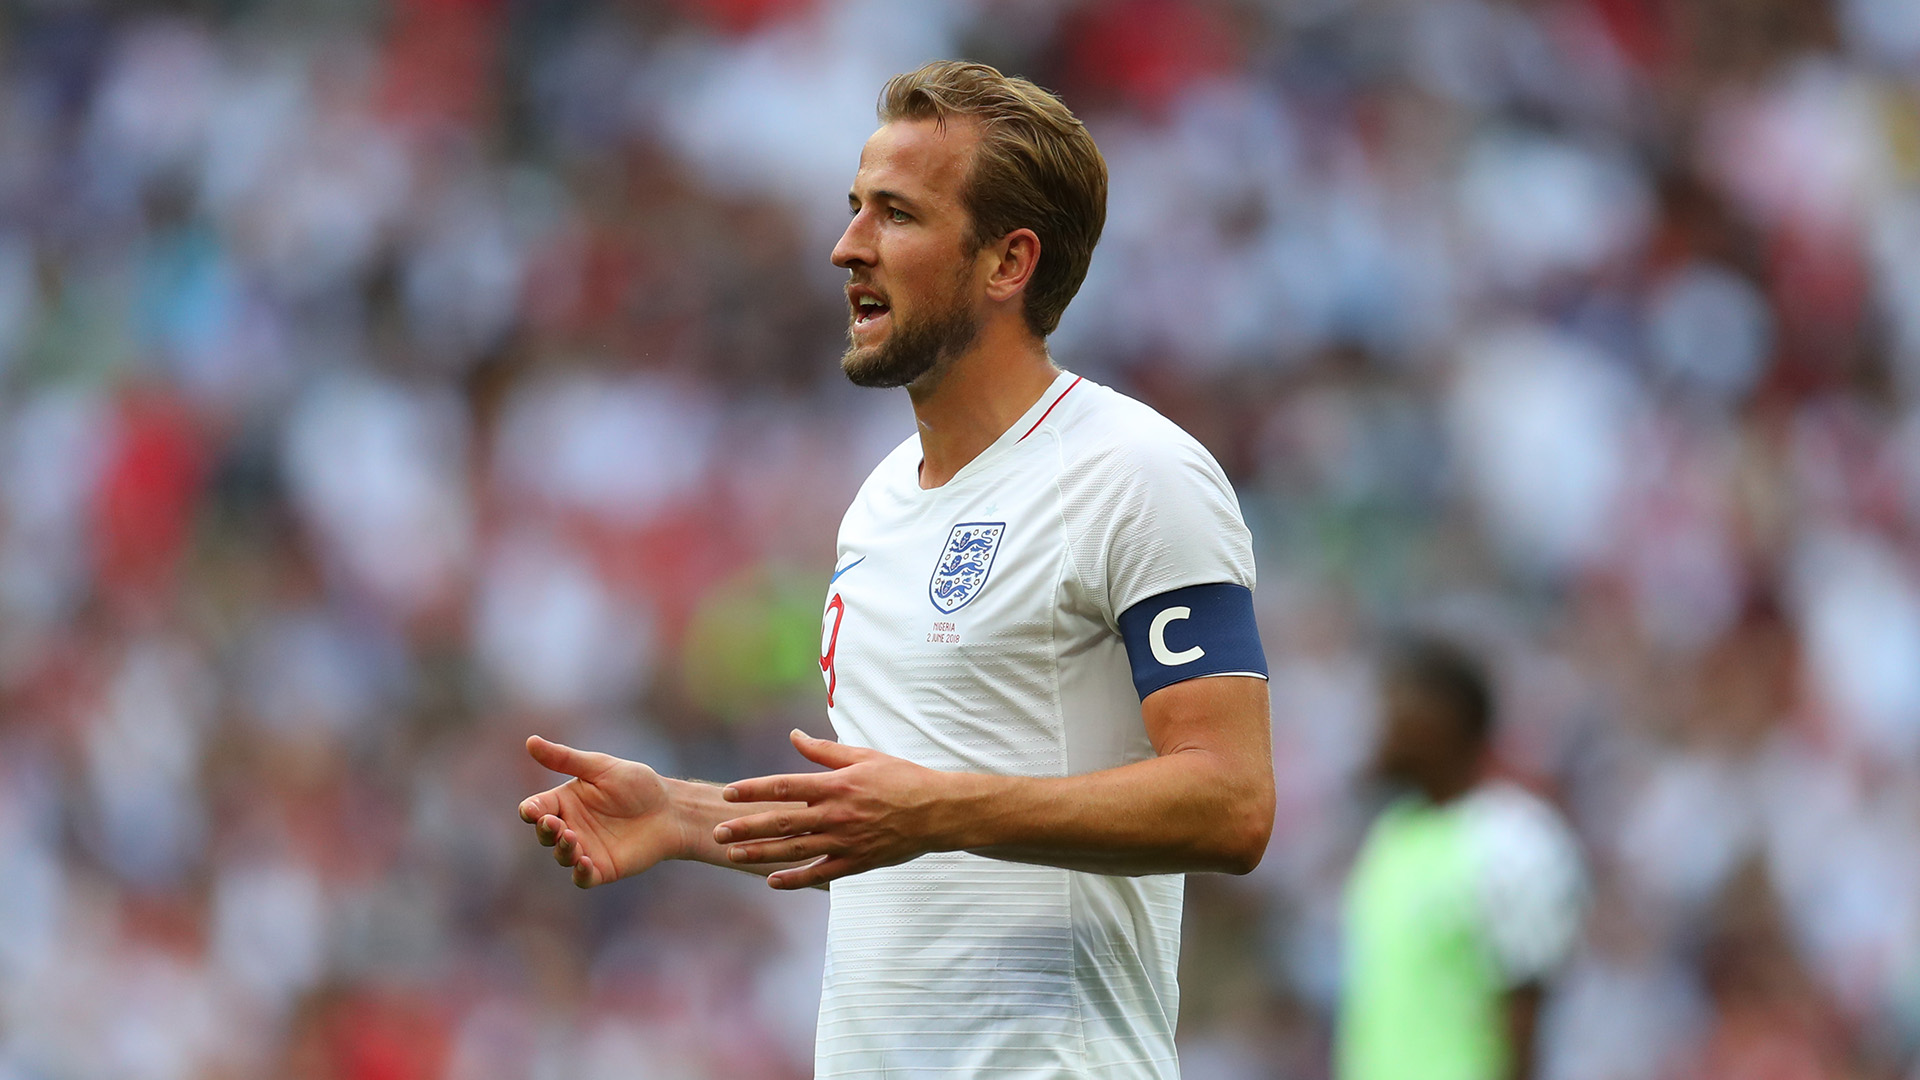 England 2-1 Tunisia: Five things we learnt